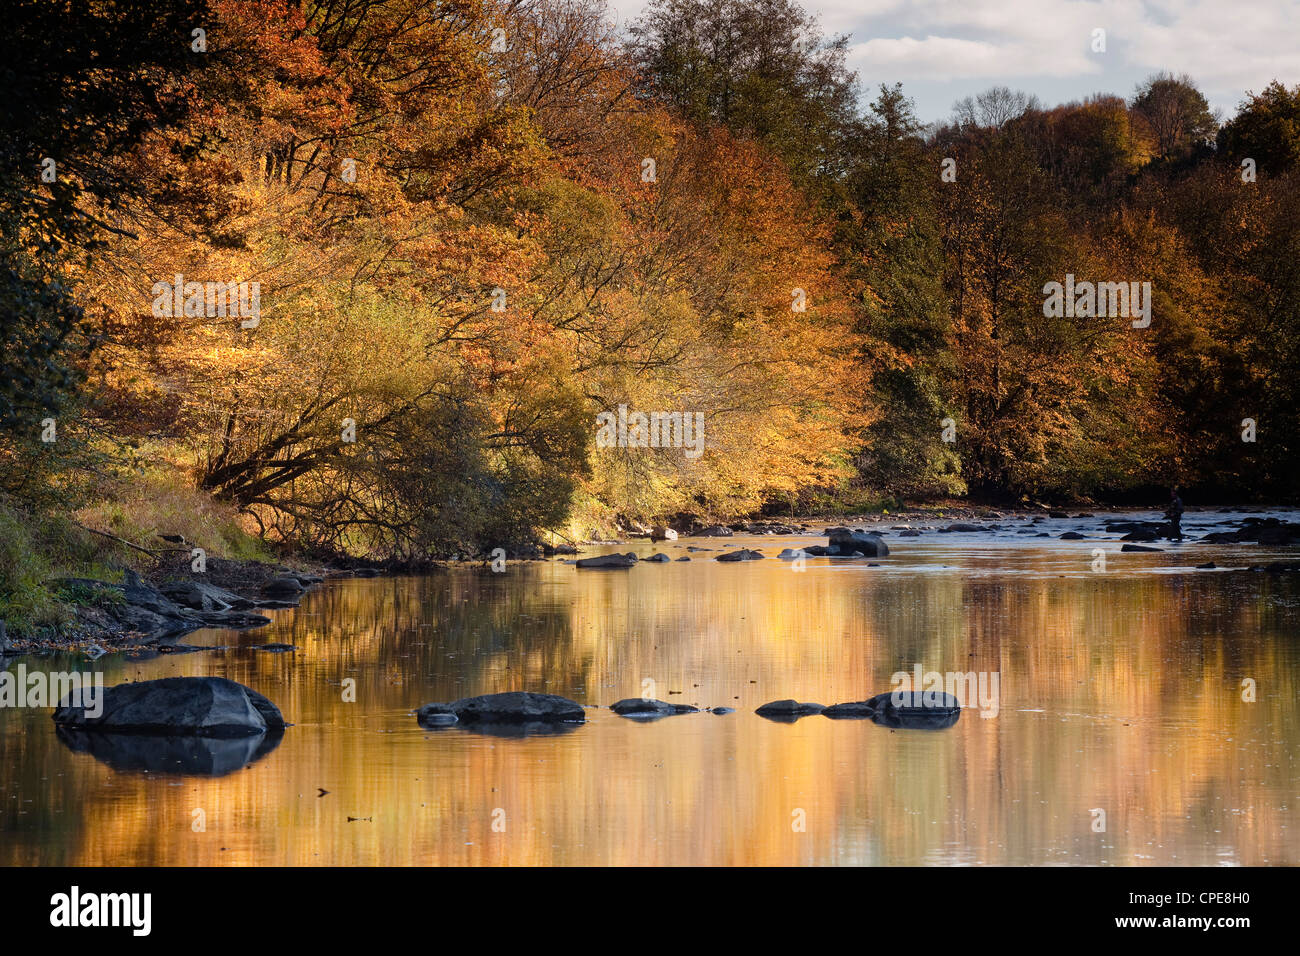 River Creuse, a favourite area of the river of the artist Claude Monet, Limousin, France - Stock Image